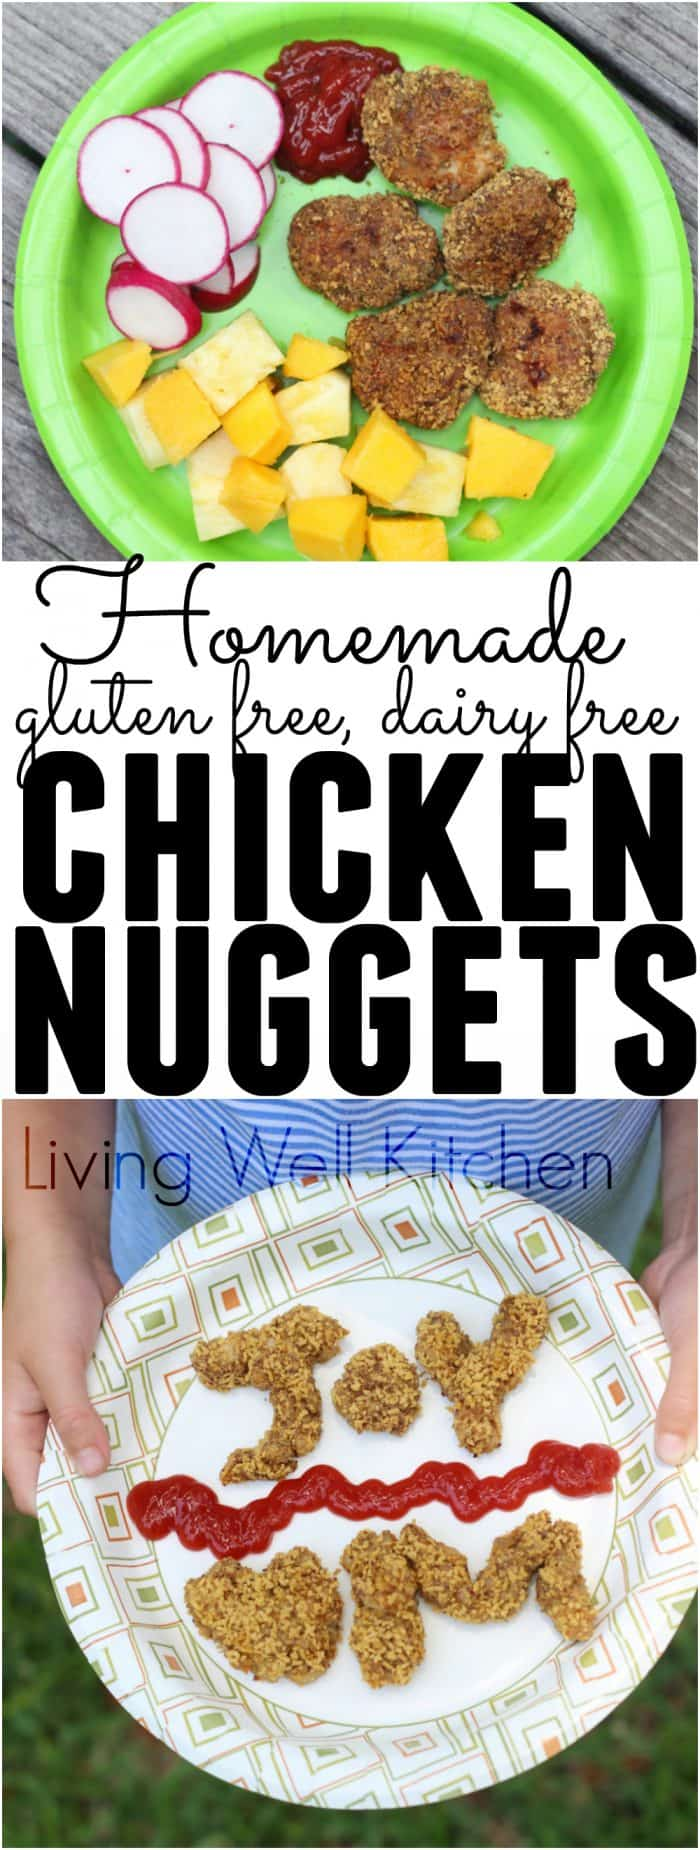 Homemade chicken nuggets photo collage